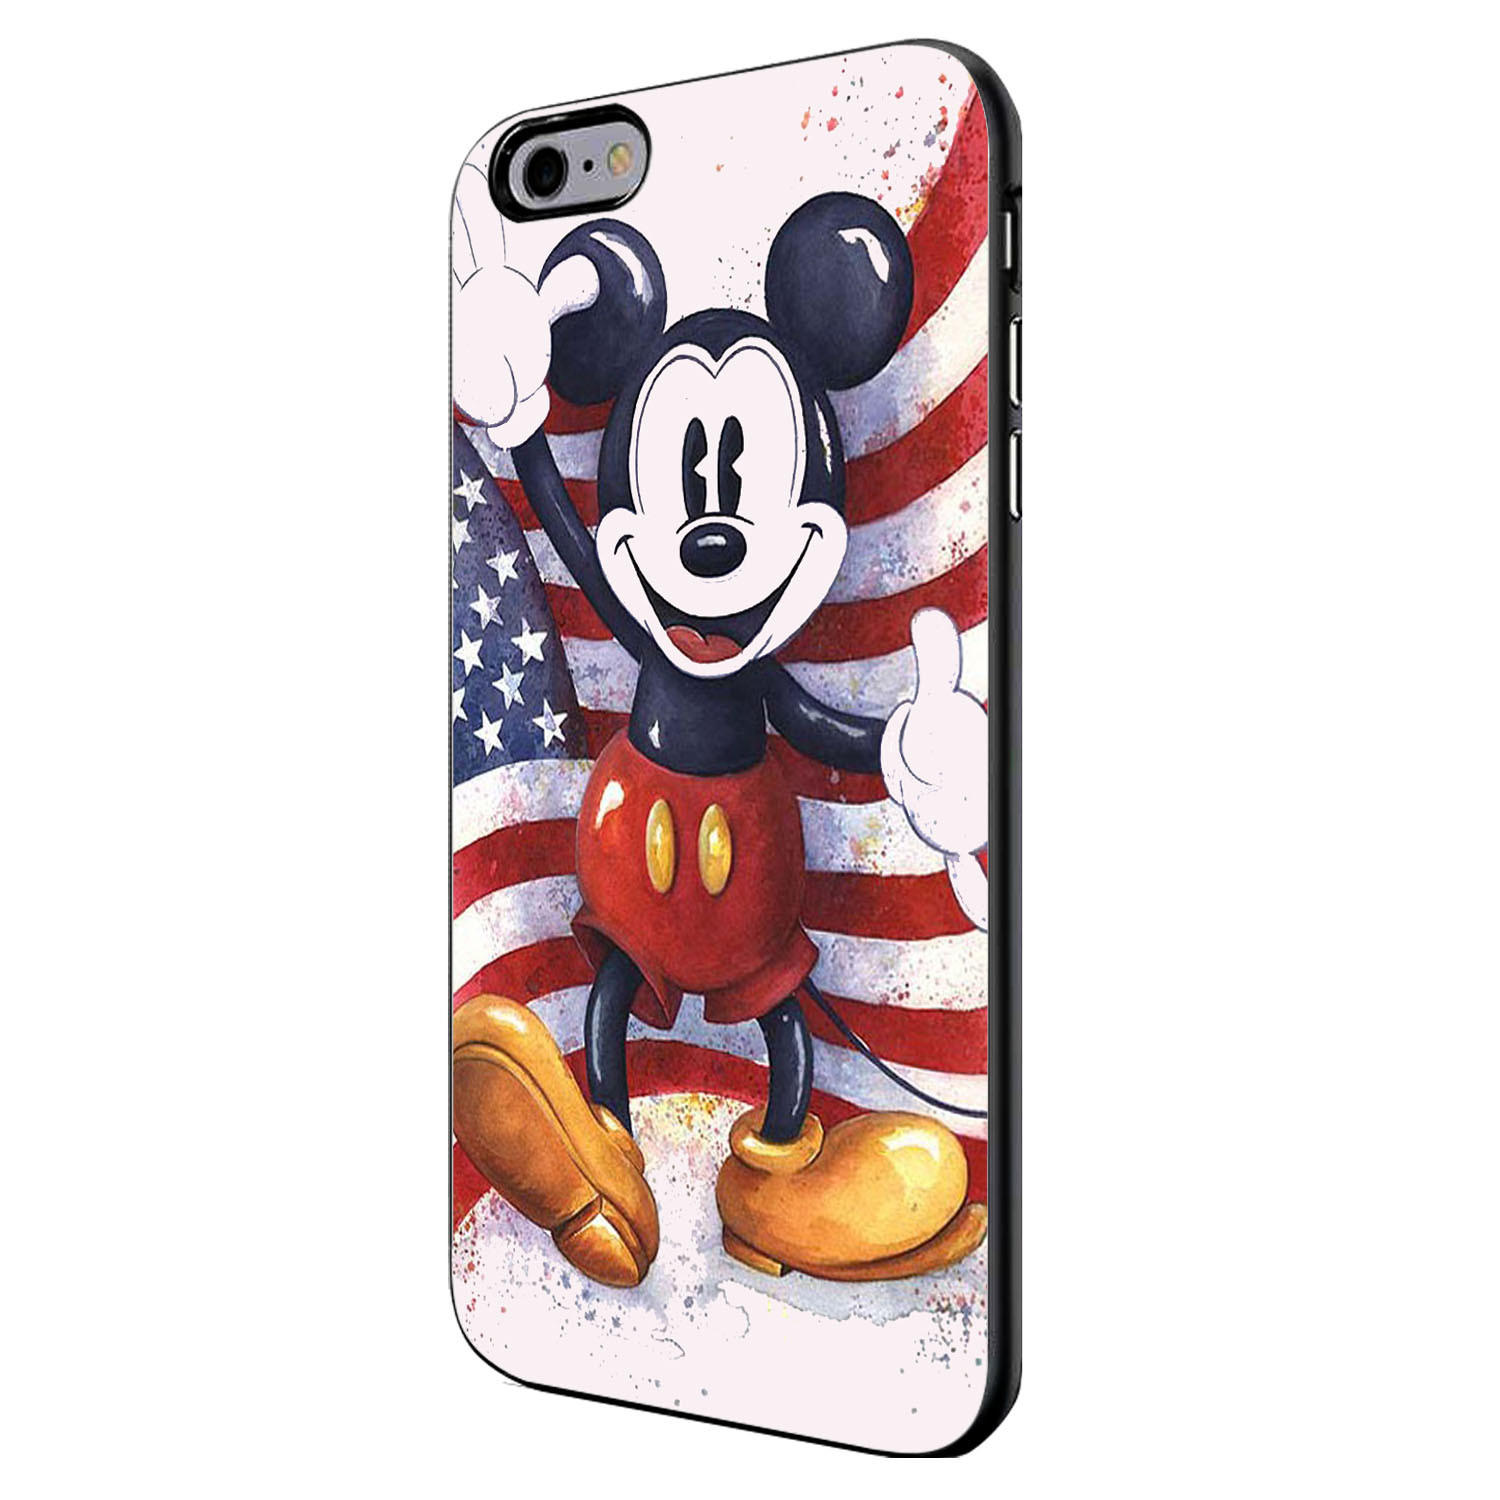 Disney Mickey Mouse Iphone 6 Plus Case From Iphonecasespot Com